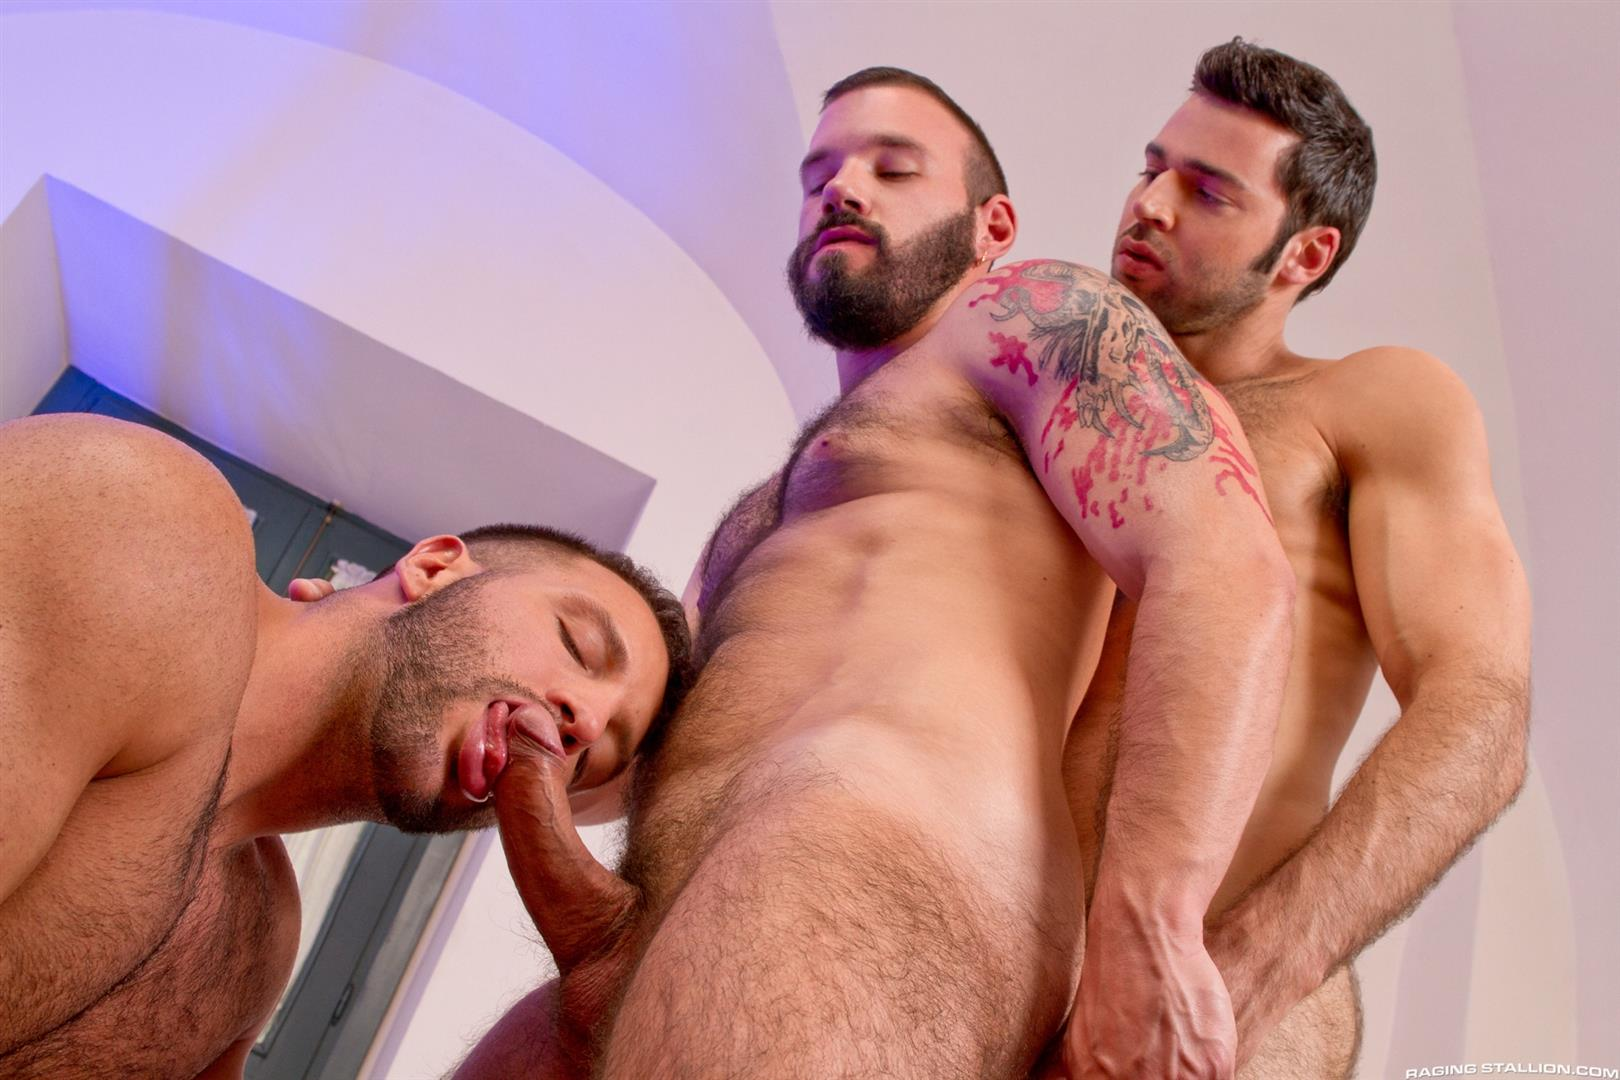 Raging-Stallion-Donato-Reyes-and-Dario-Beck-and-Alessio-Veneziano-Hairy-Muscle-Bears-With-Big-Uncut-Cocks-Fucking-Amateur-Gay-Porn-02 Hairy Muscle Bear Hustlers With Big Uncut Cocks Fucking A John